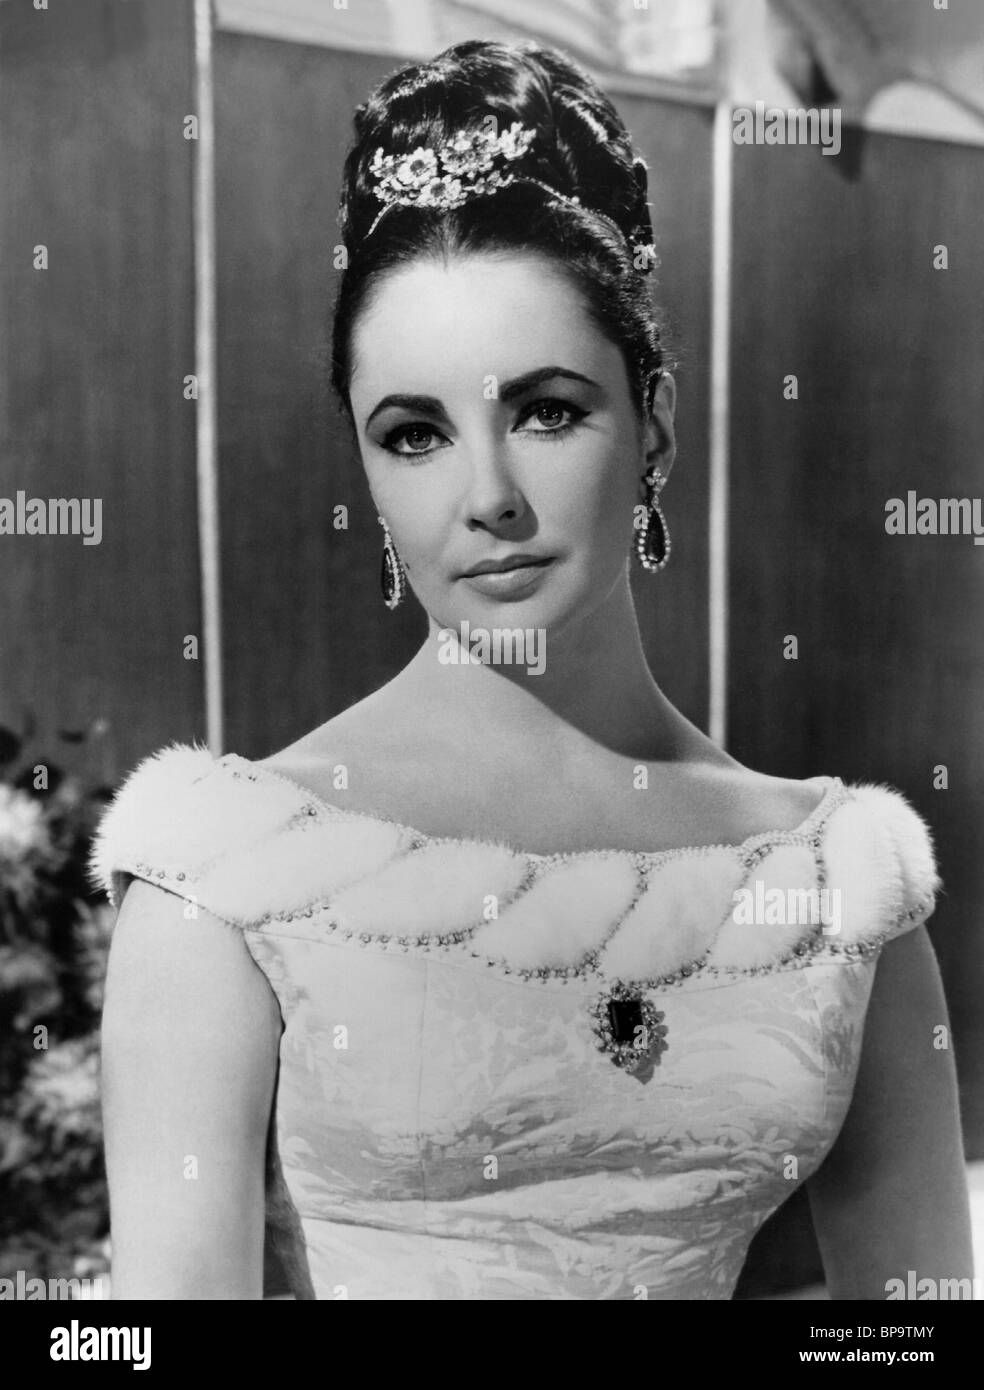 ELIZABETH TAYLOR V.I.P.S.; HOTEL INTERNATIONAL (1963) Stockbild